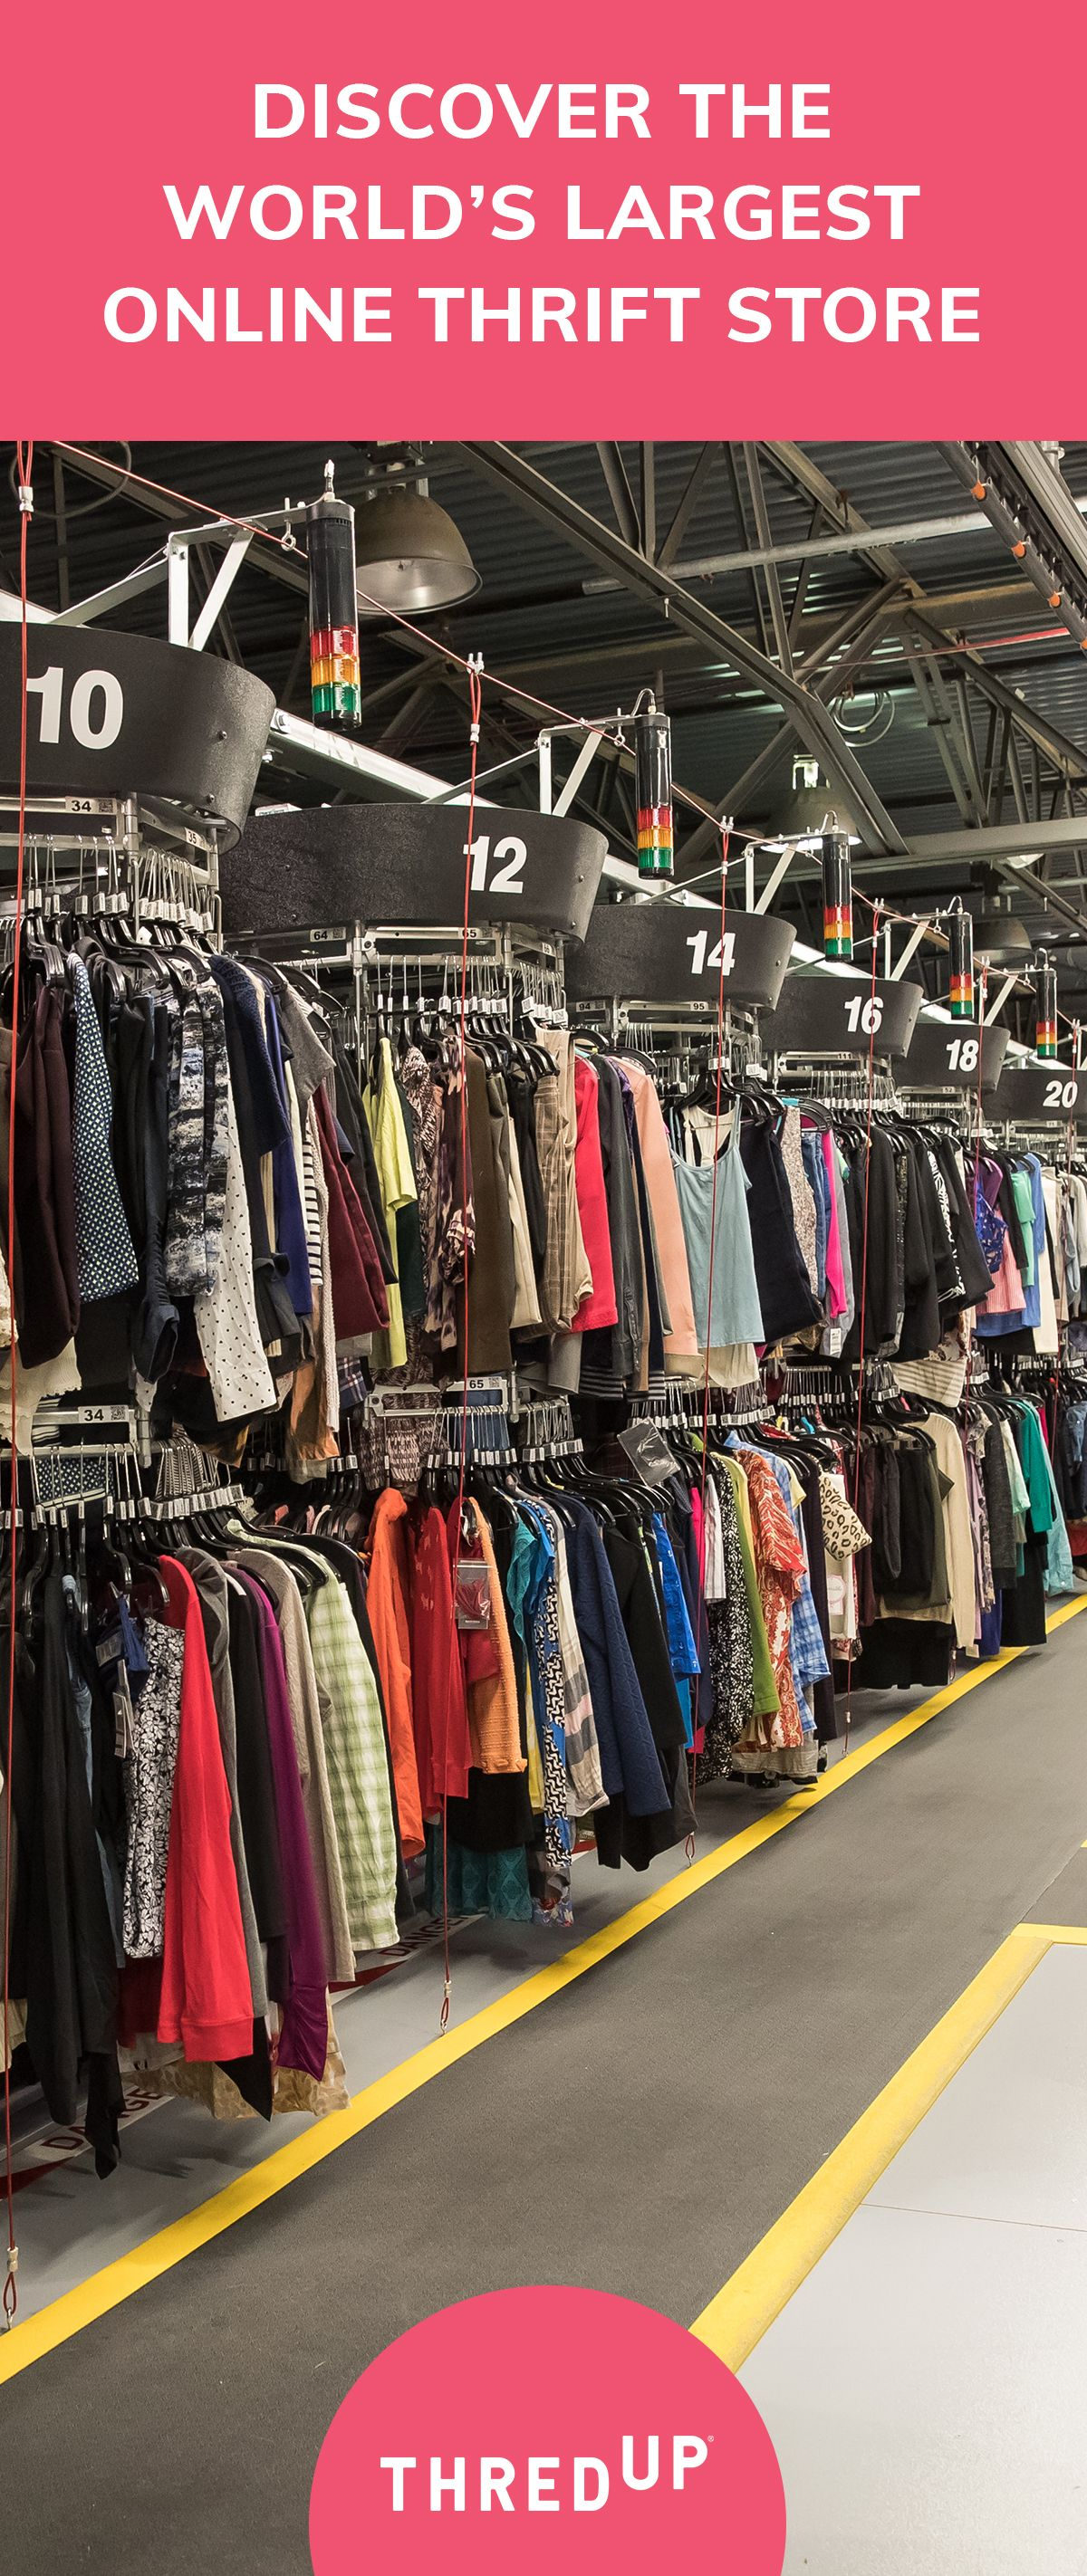 35 000 Brands Up To 90 Off Thrift Store Outfits Thrifting Fashion